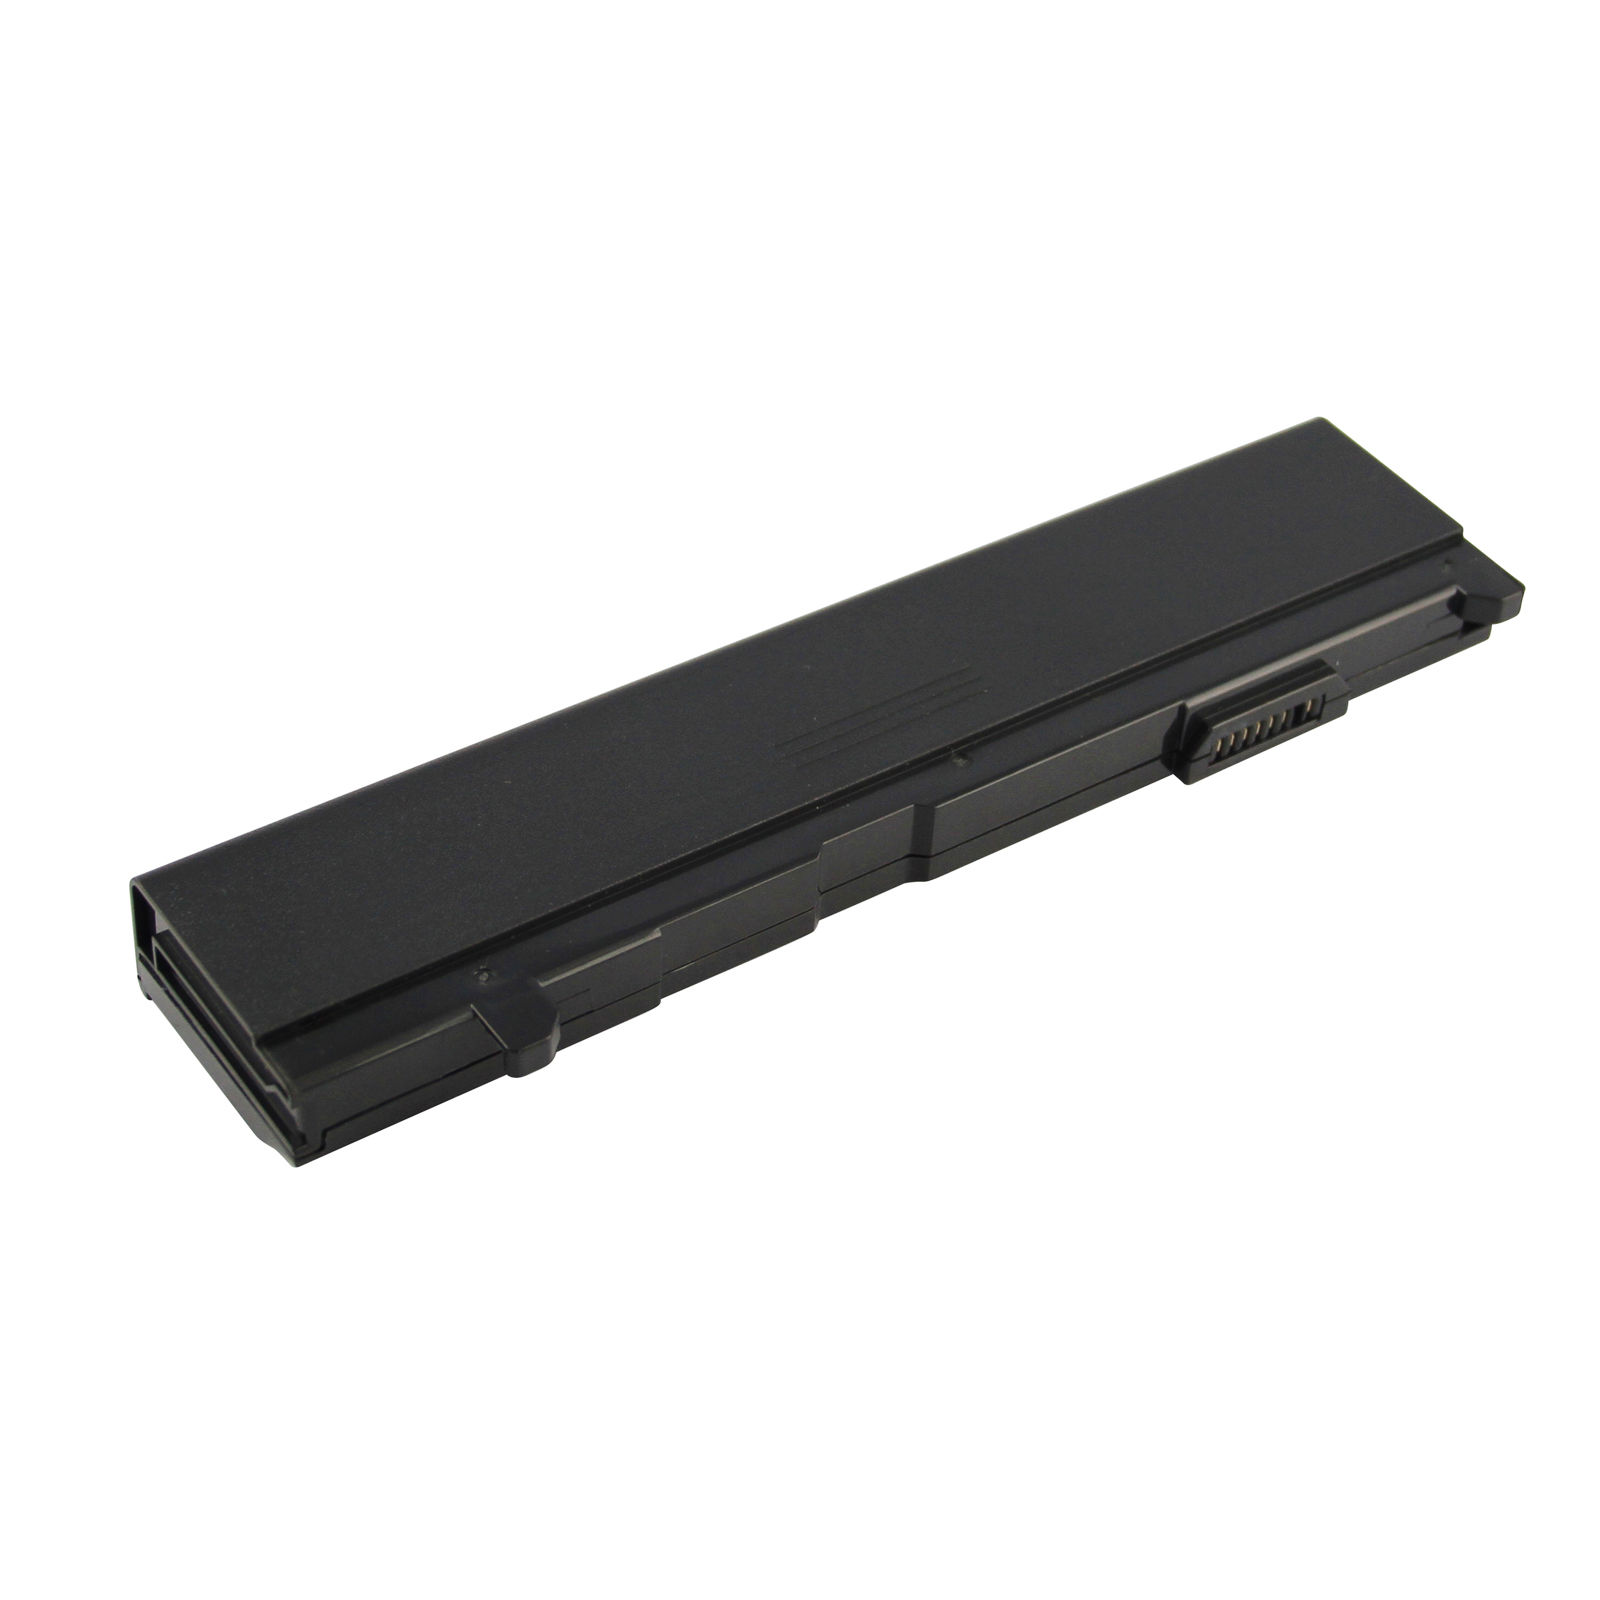 Replacement Toshiba Satellite A105-S2719 Battery